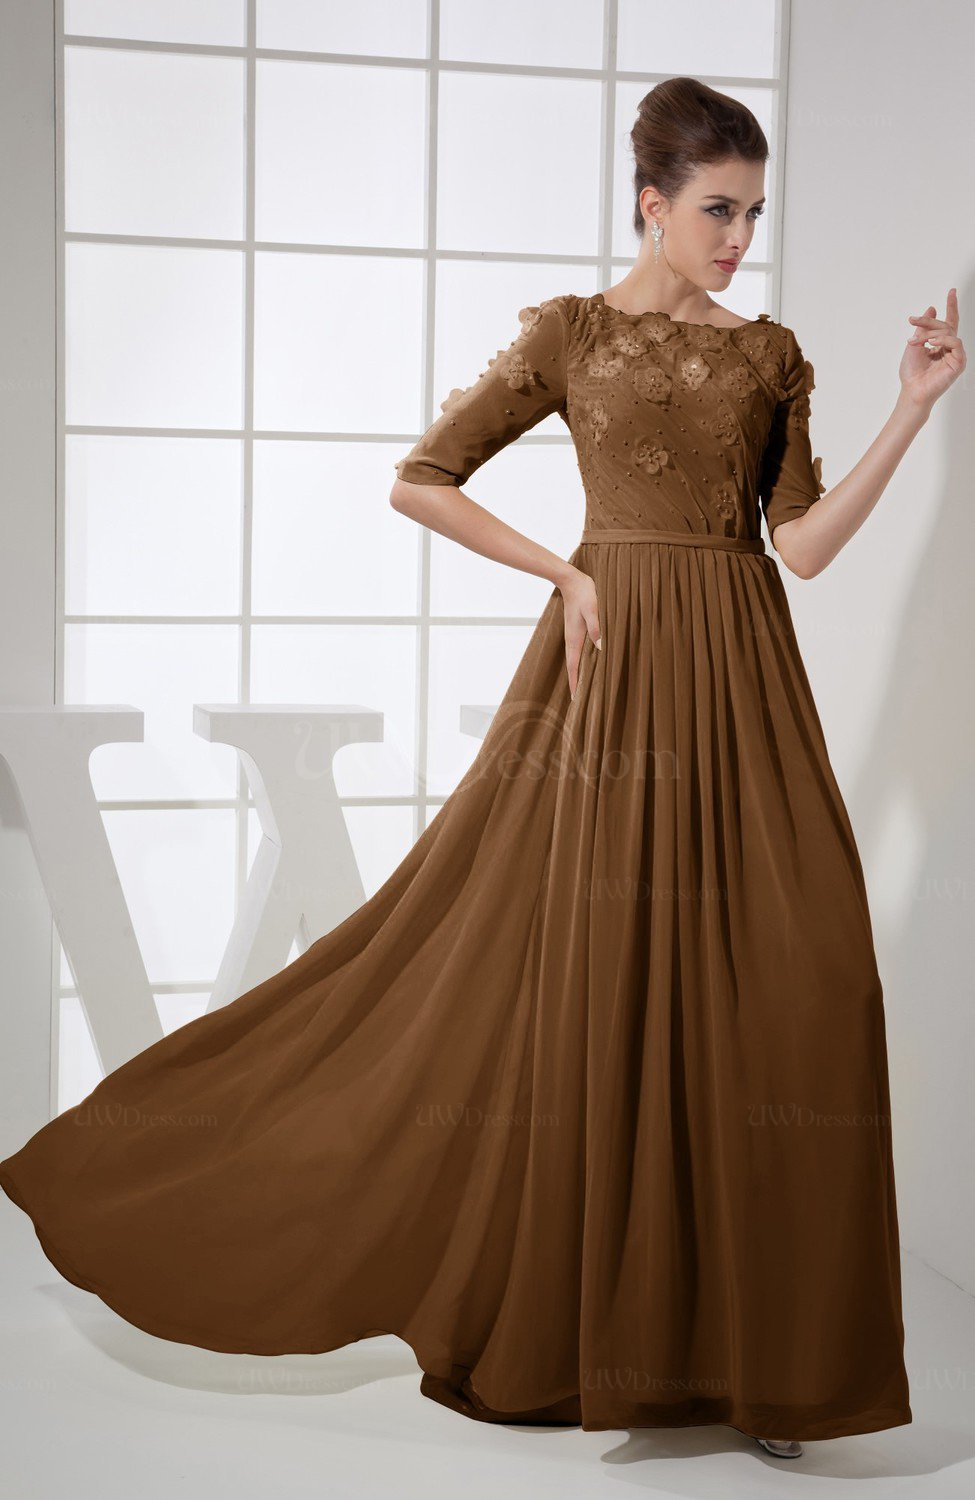 acff4a5af23b Brown Vintage A-line Elbow Length Sleeve Chiffon Brush Train Beaded  Graduation Dresses (Style D19167)